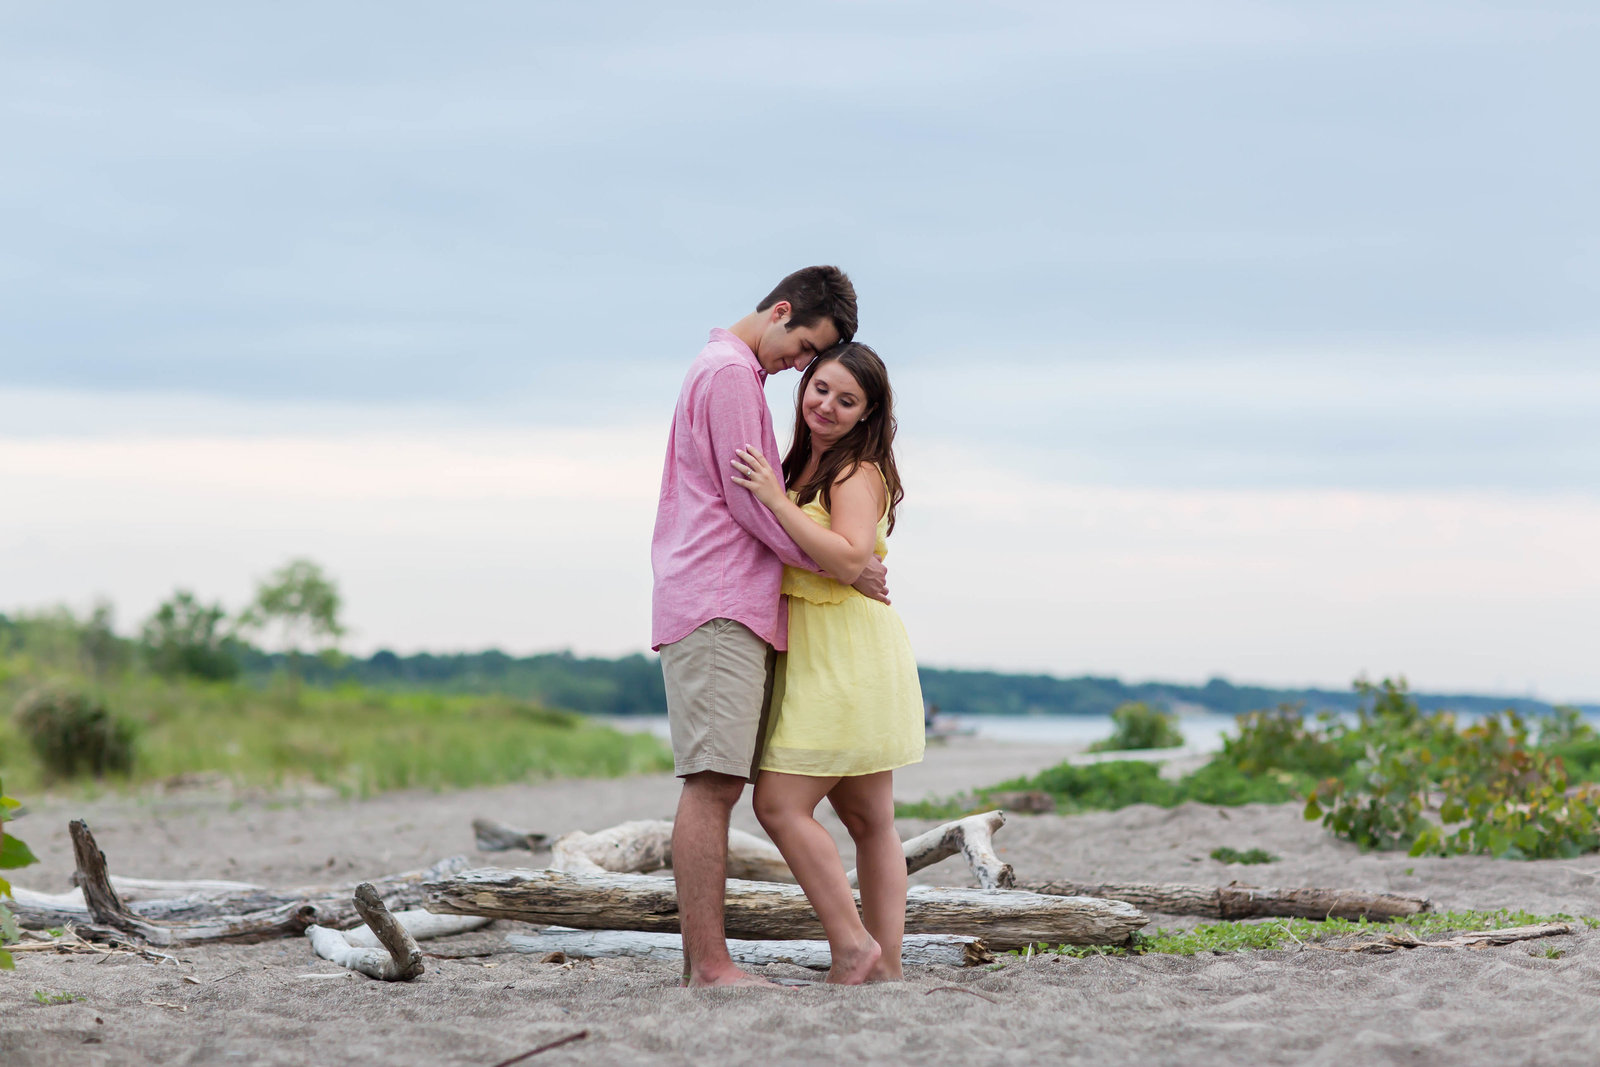 headlands-beach-mentor-ohio-engagement-session-60